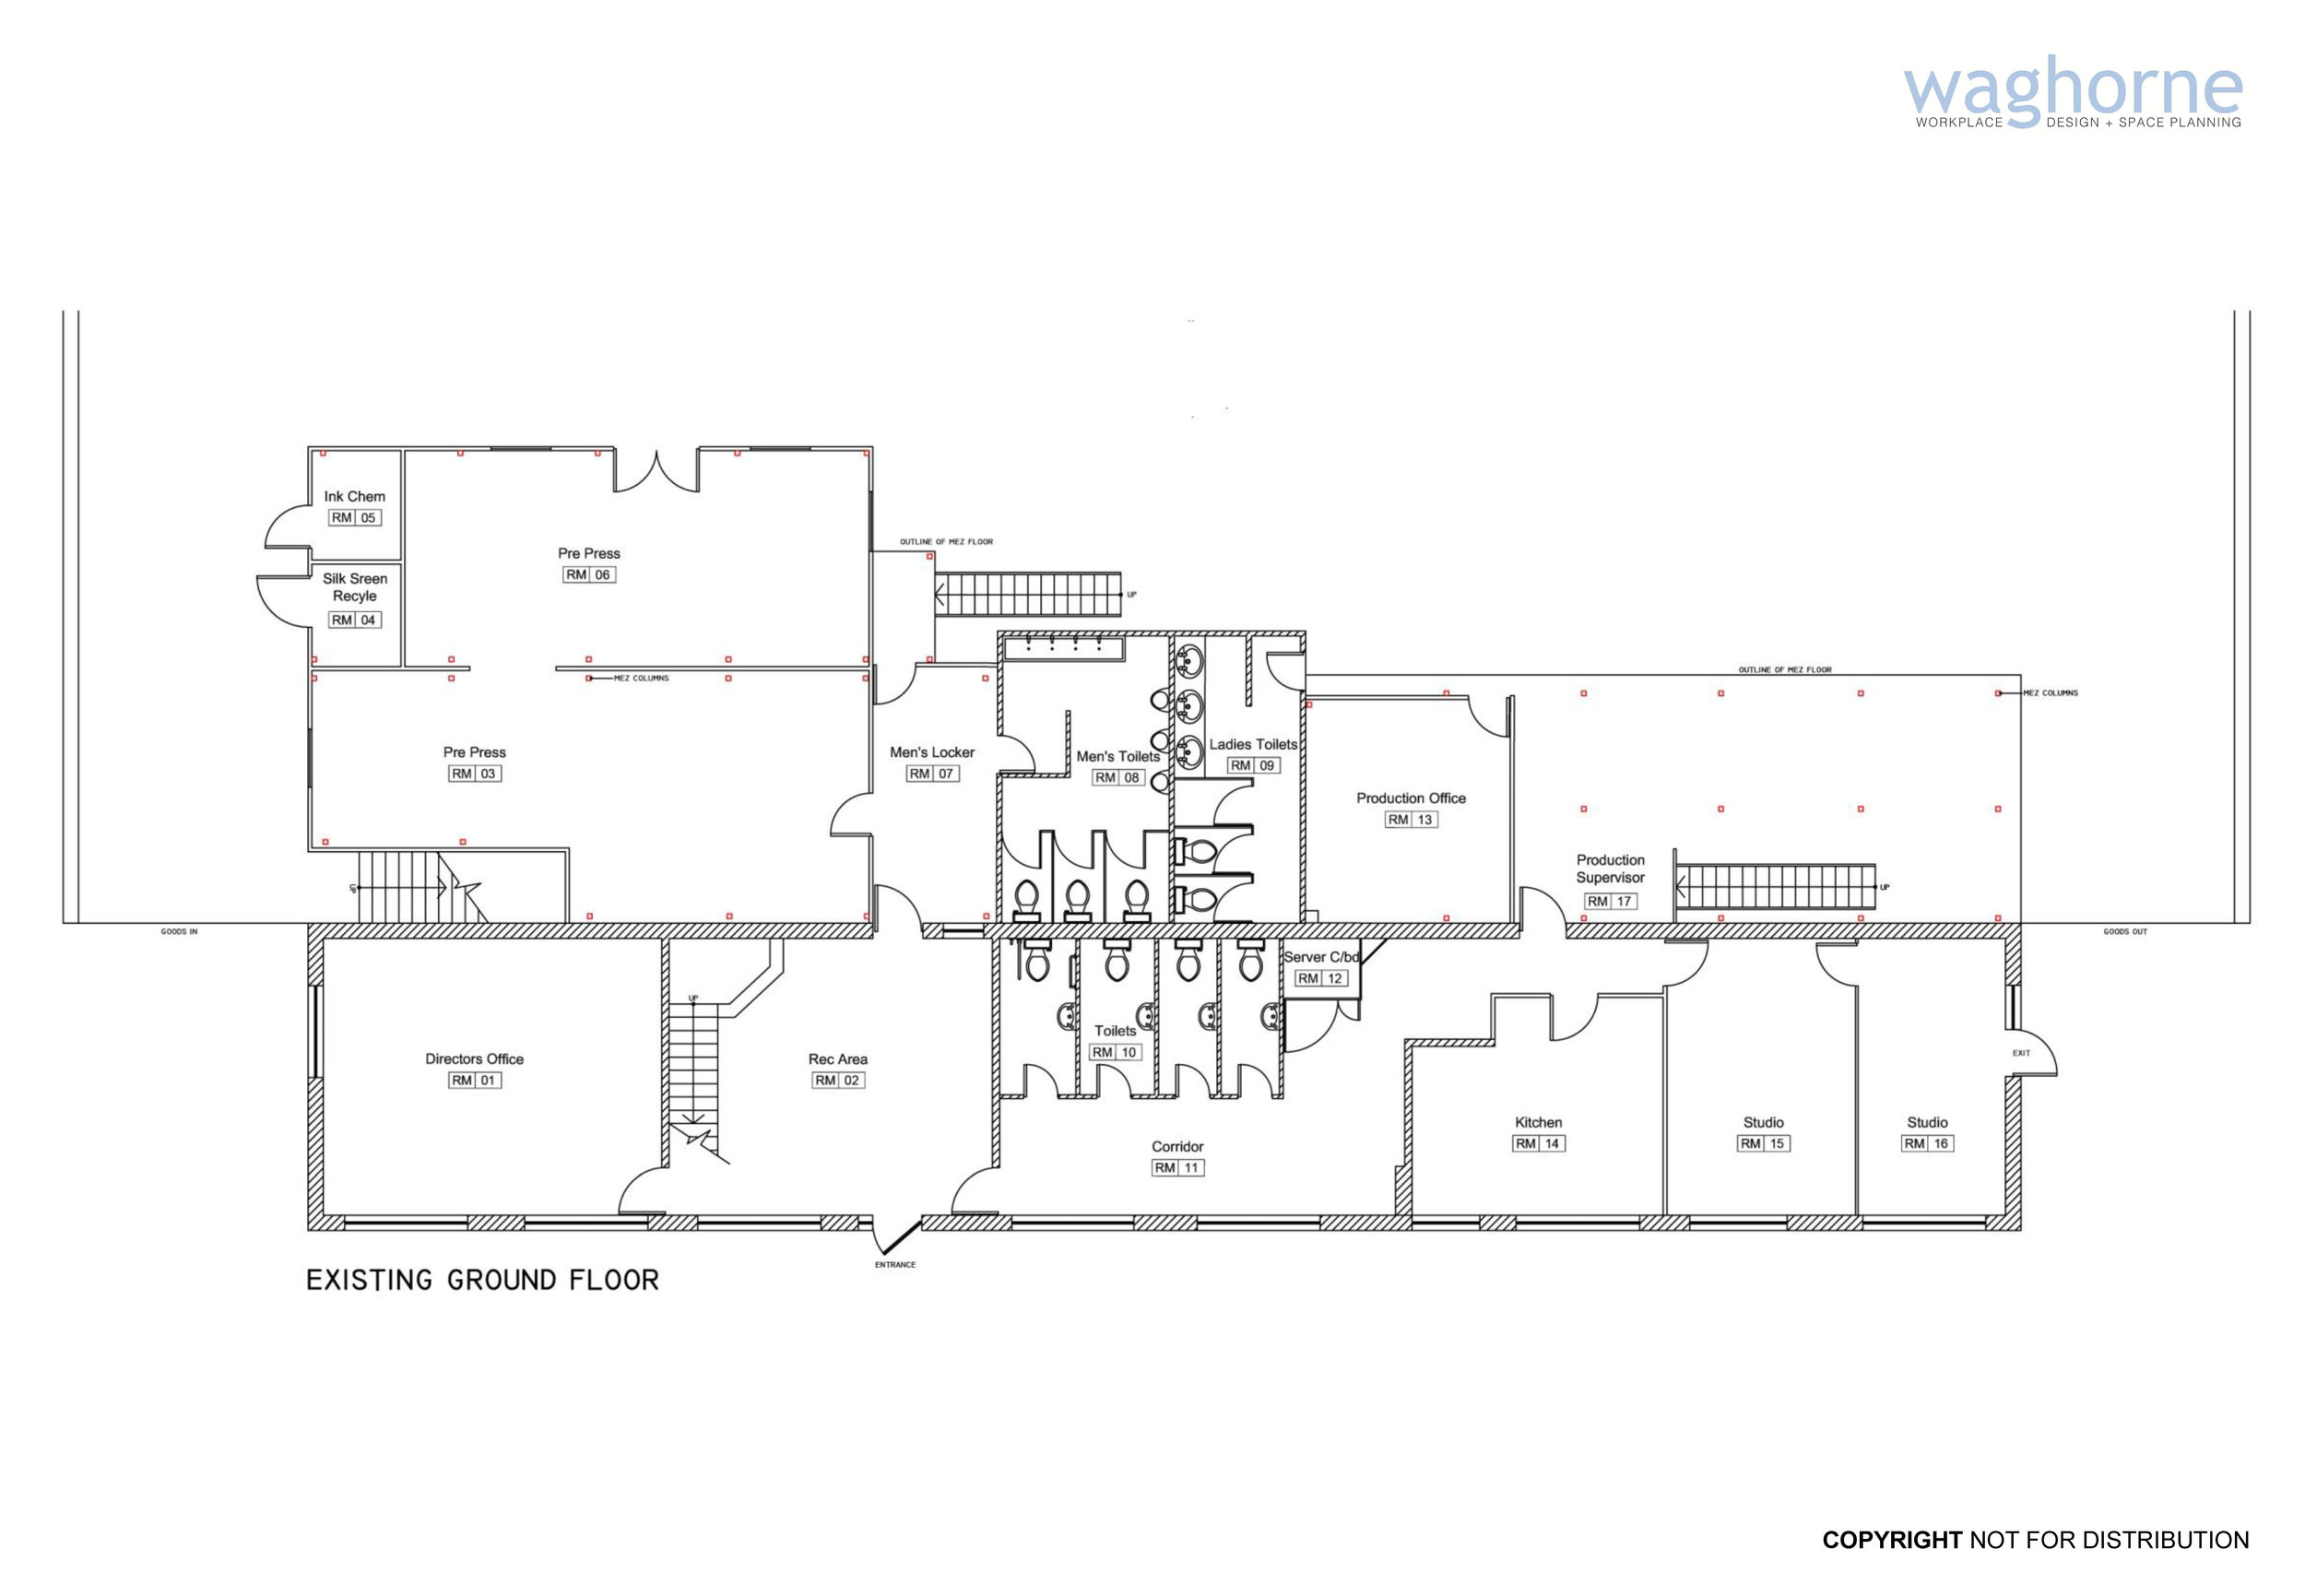 Office remodelling - design and refit - Littlehampton manufacturing sector-22